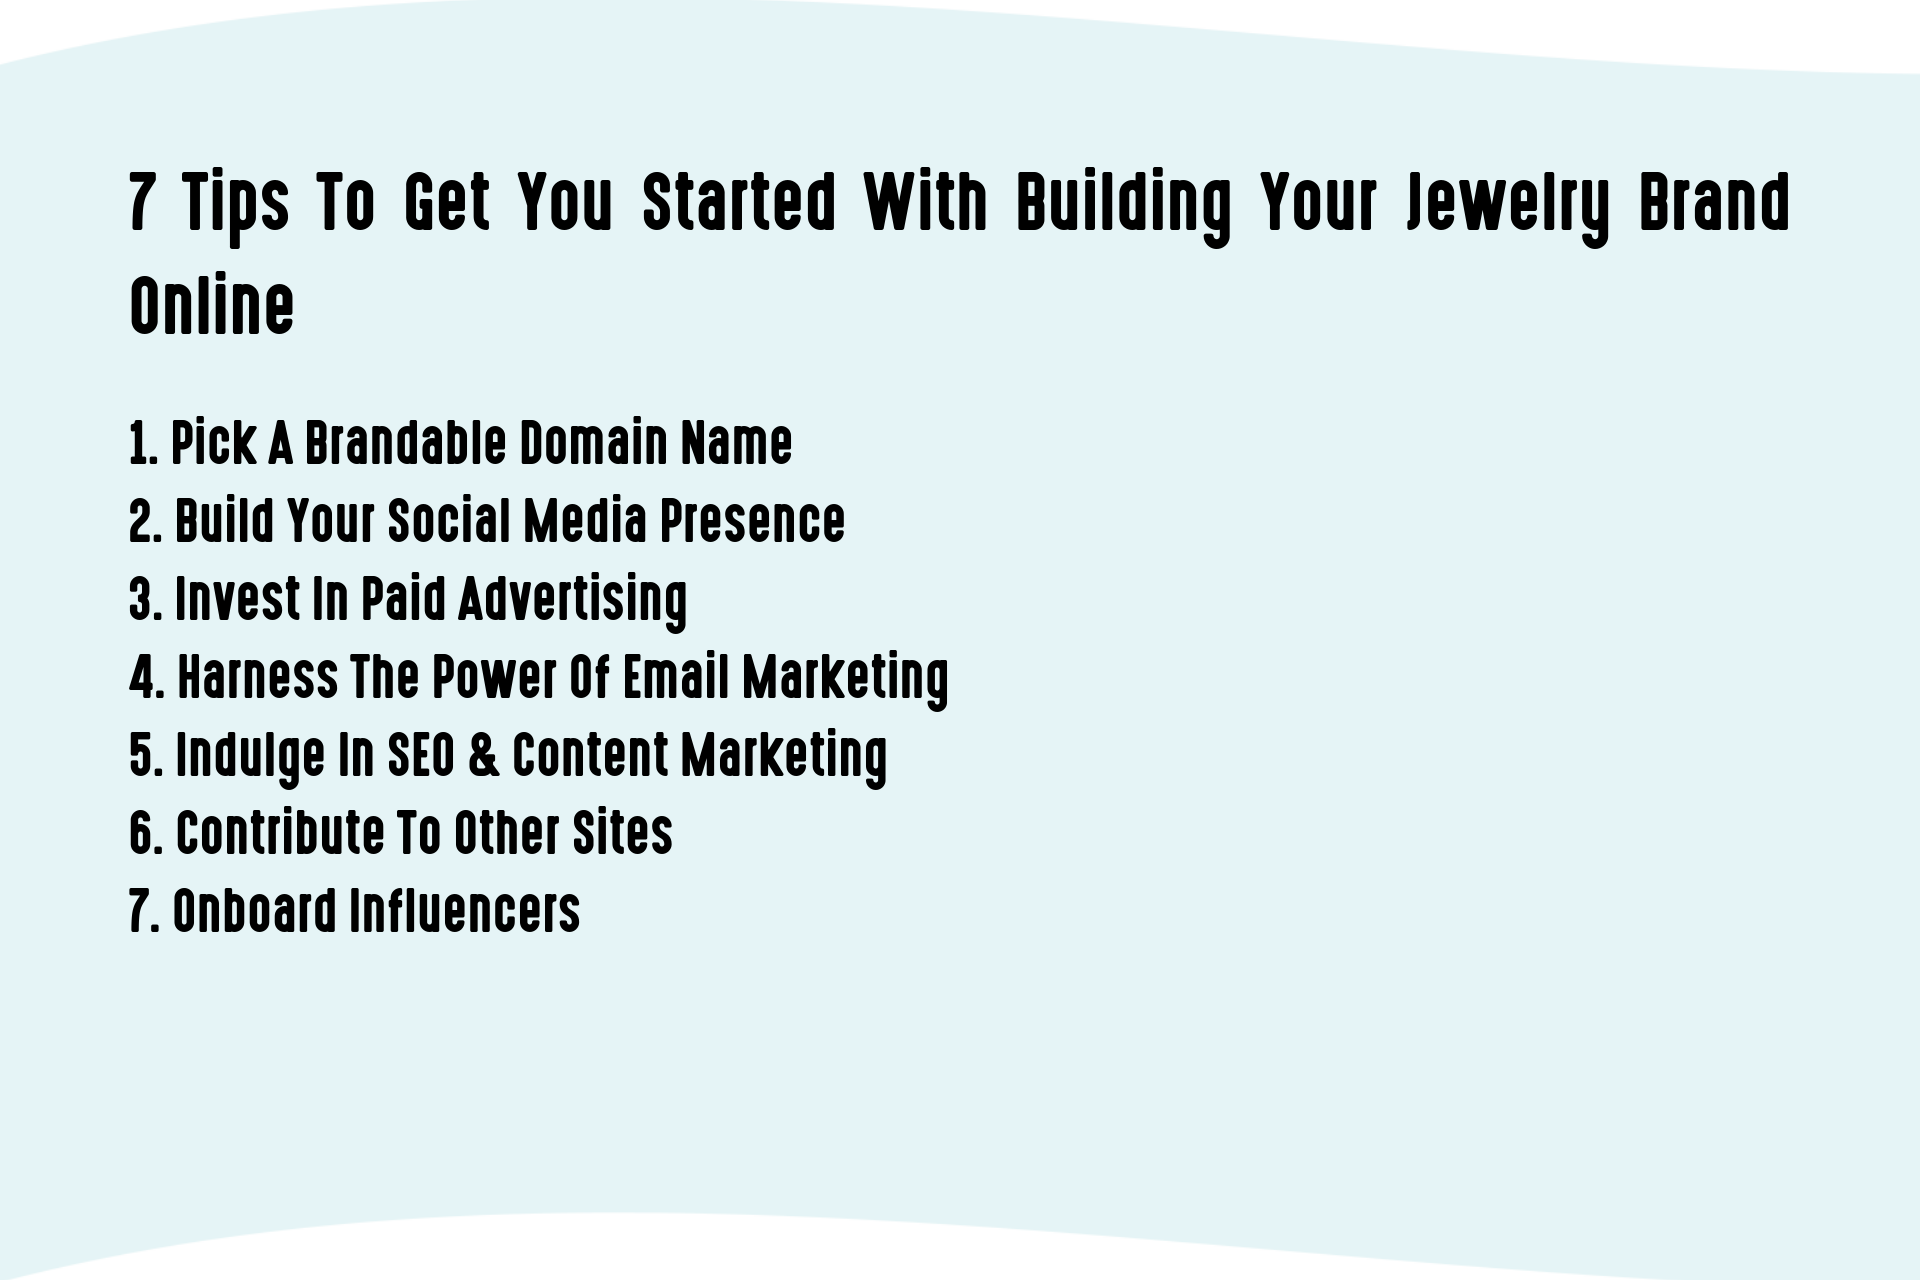 7 Tips To Get You Started With Building Your Jewelry Brand Online